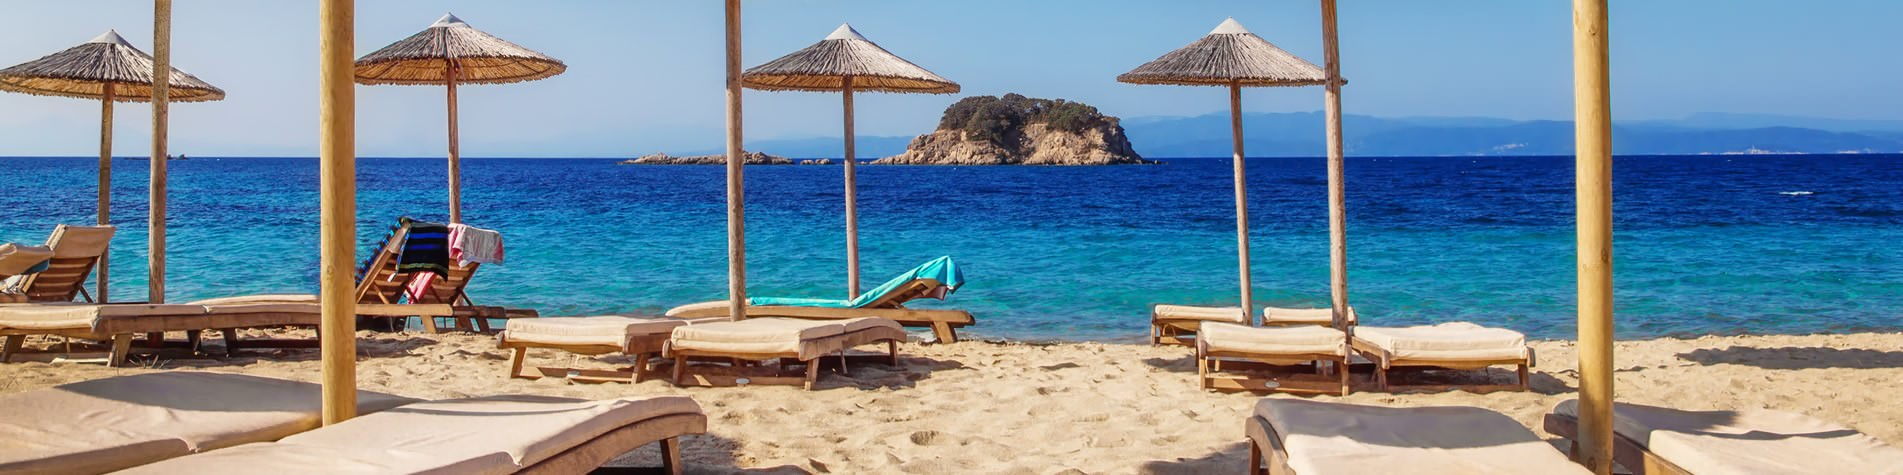 Greece Holidays with Cyplon Holidays